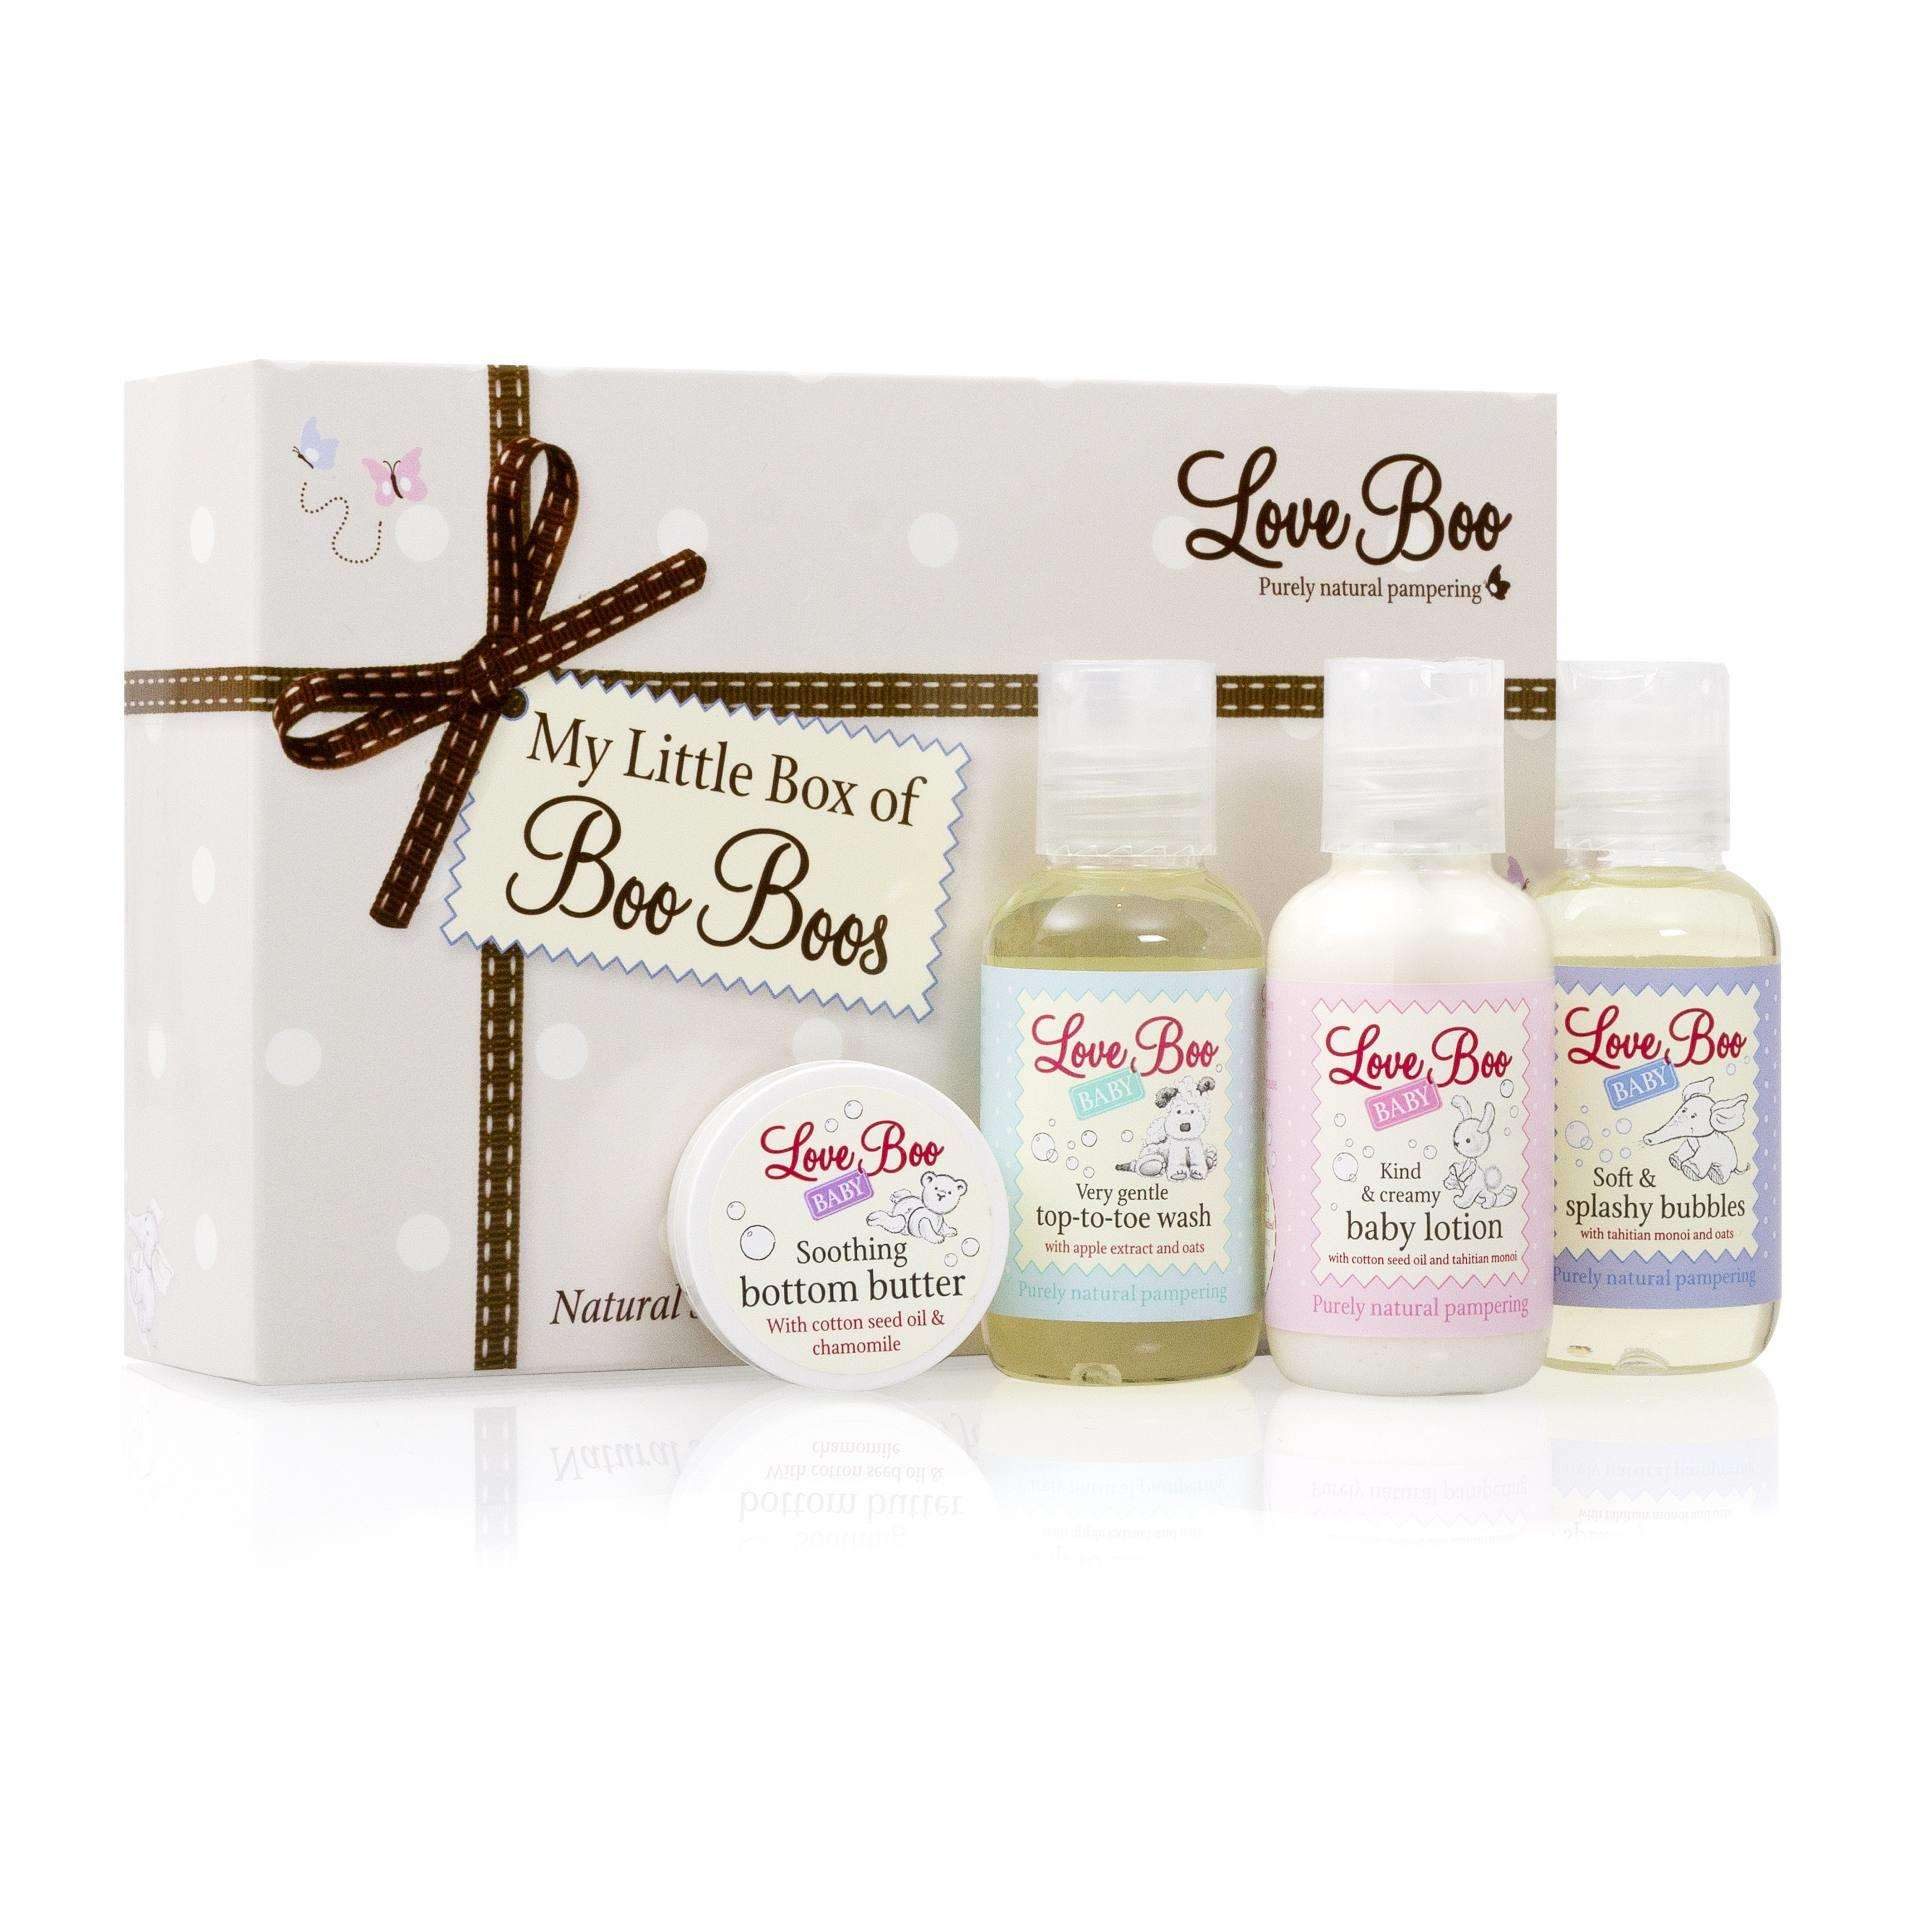 Fab Baby Brands To Buy This Christmas!, img 2129%, product-review, 0-1%